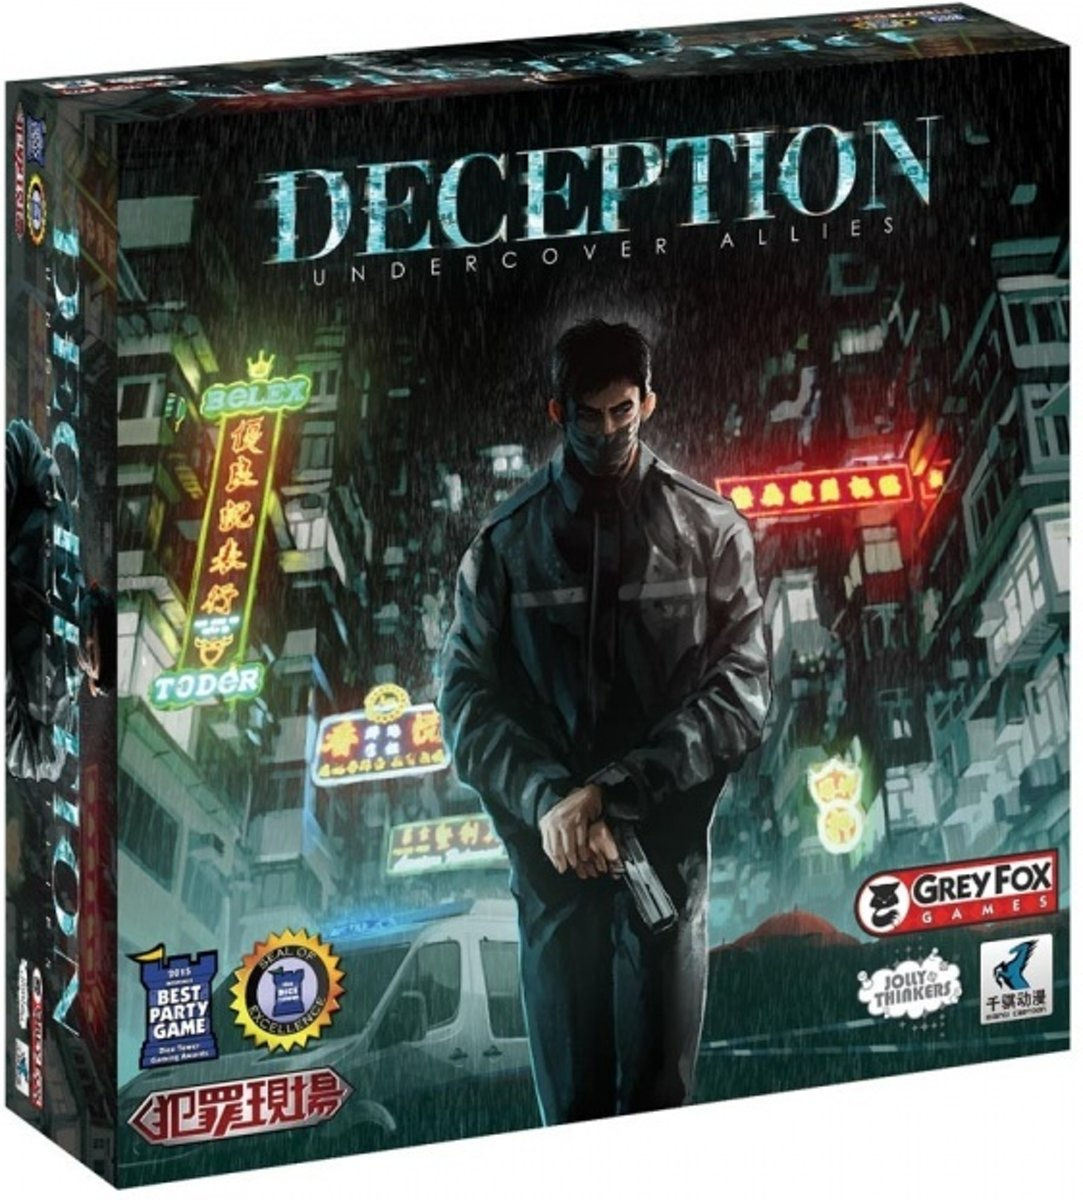 Deception Undercover Allies Expansion Kickstarter Edition